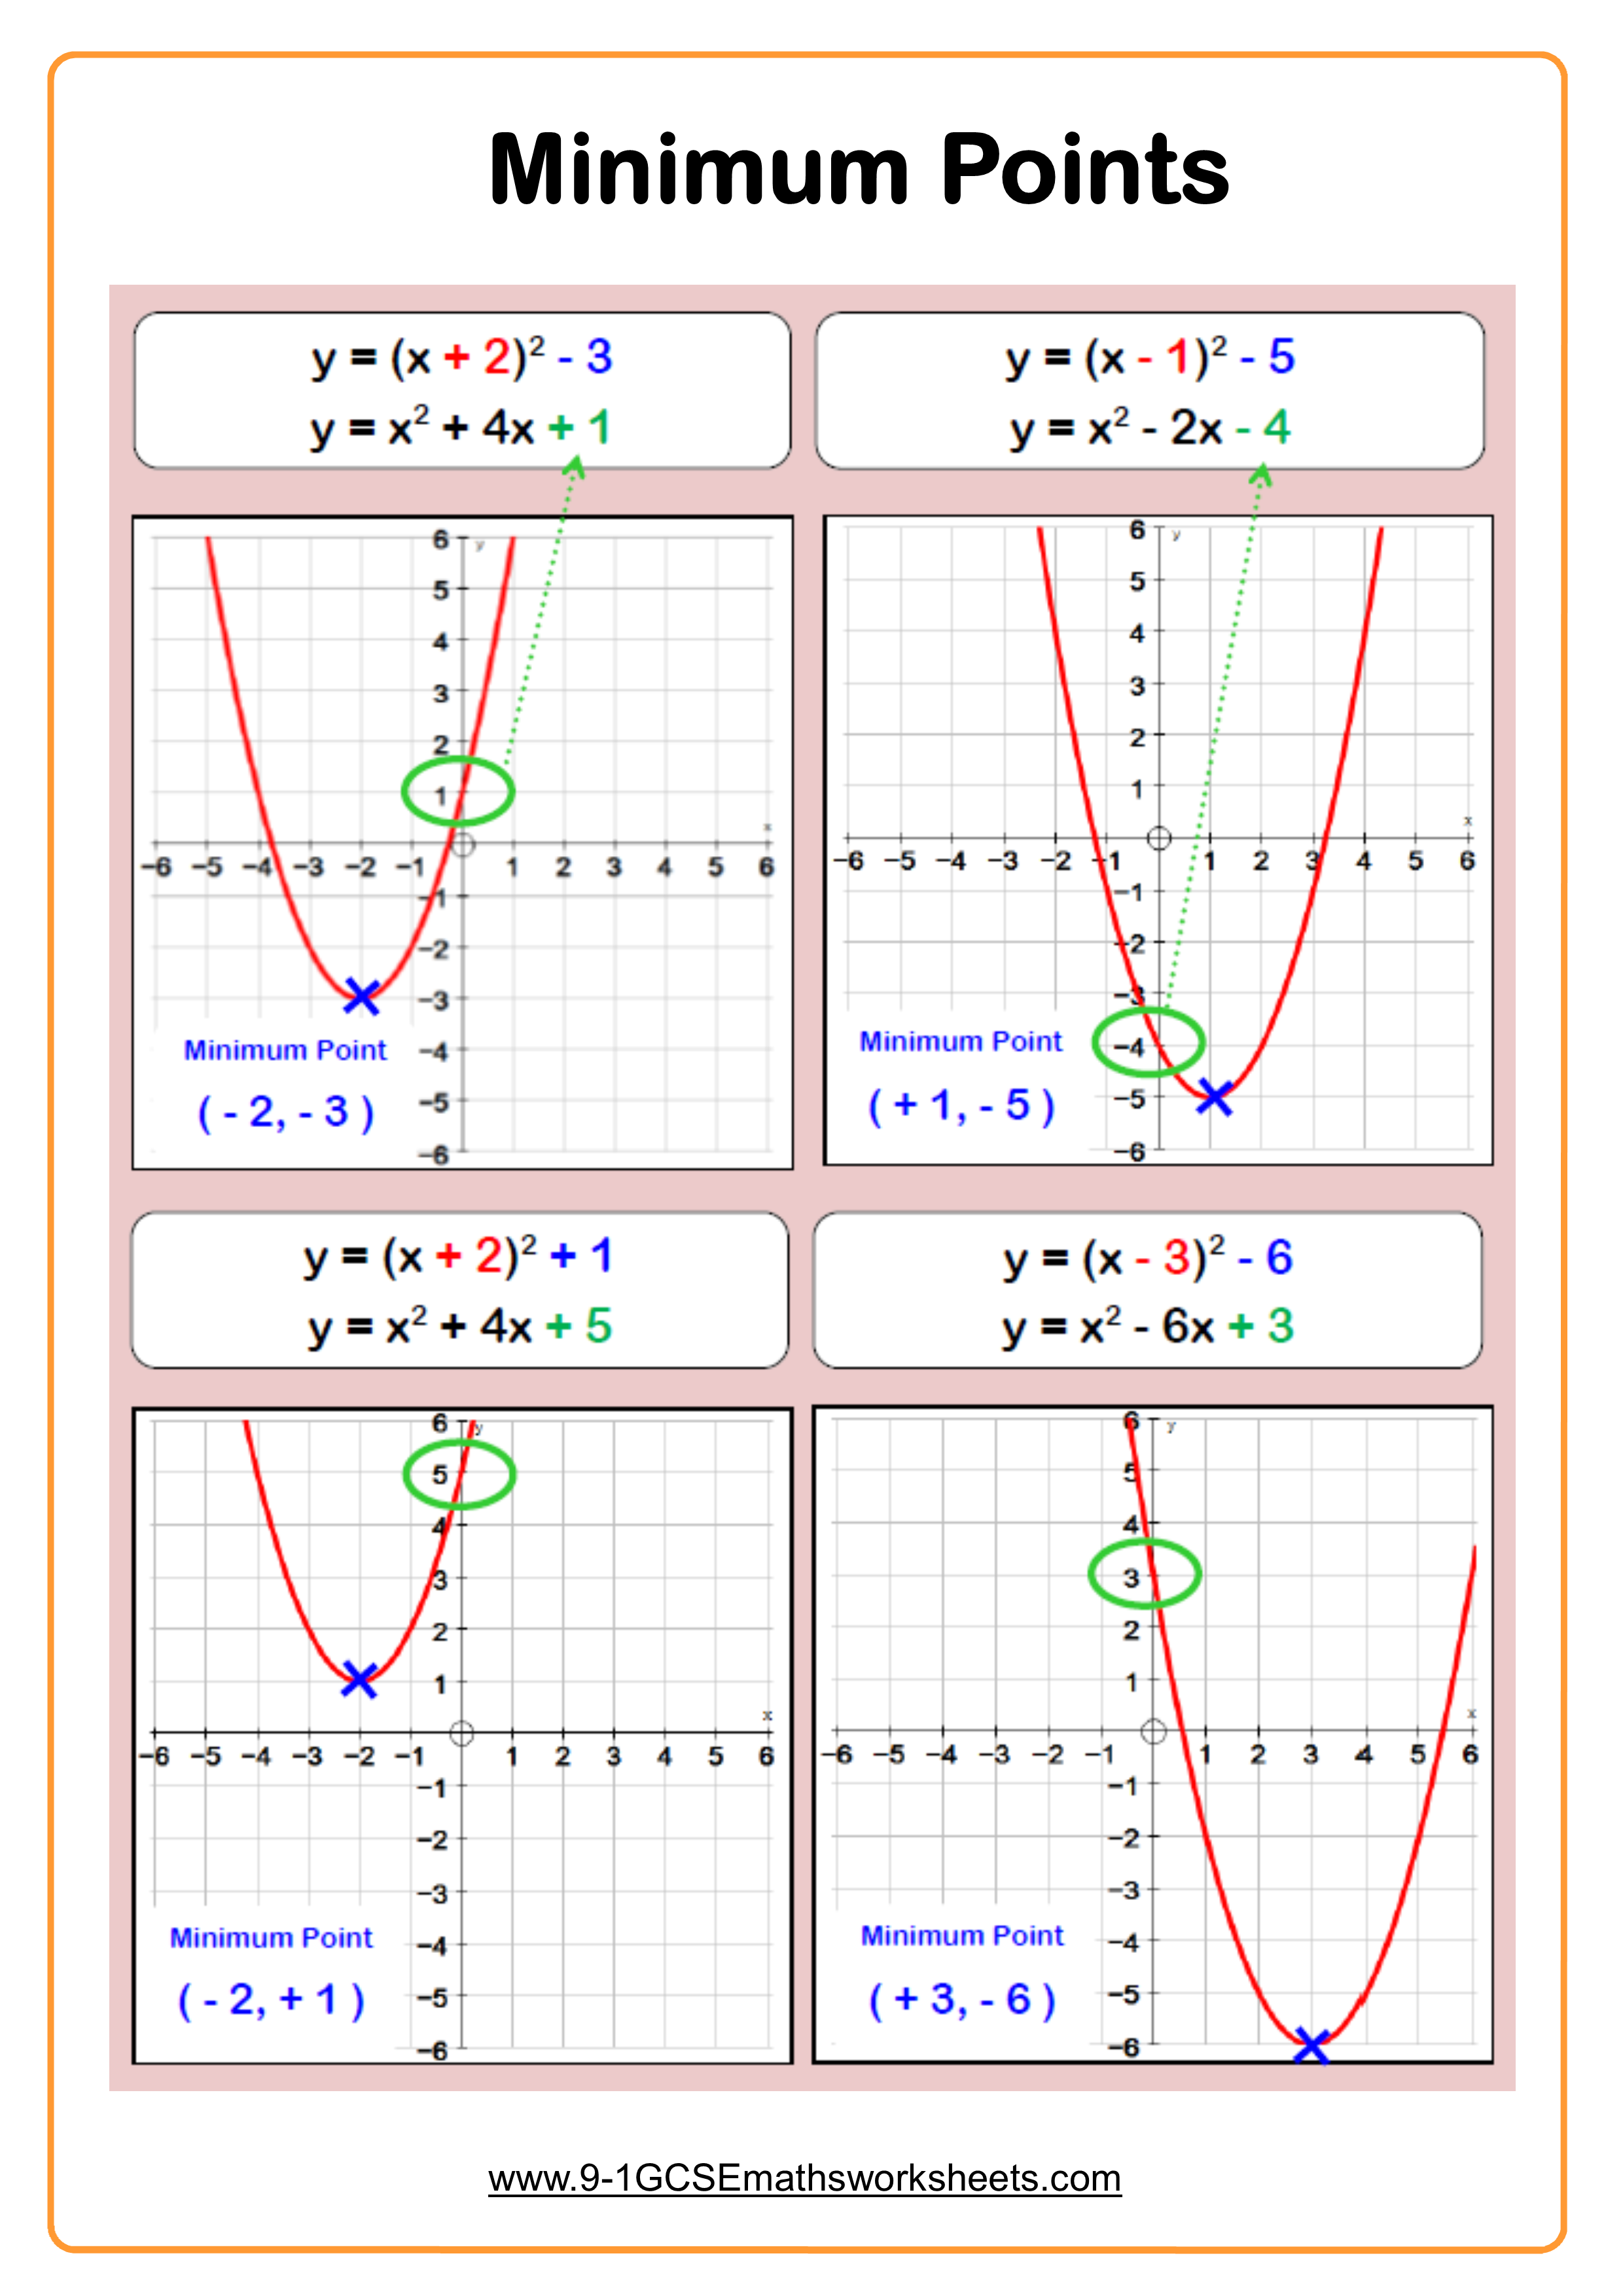 quadratic-equations-minimum points